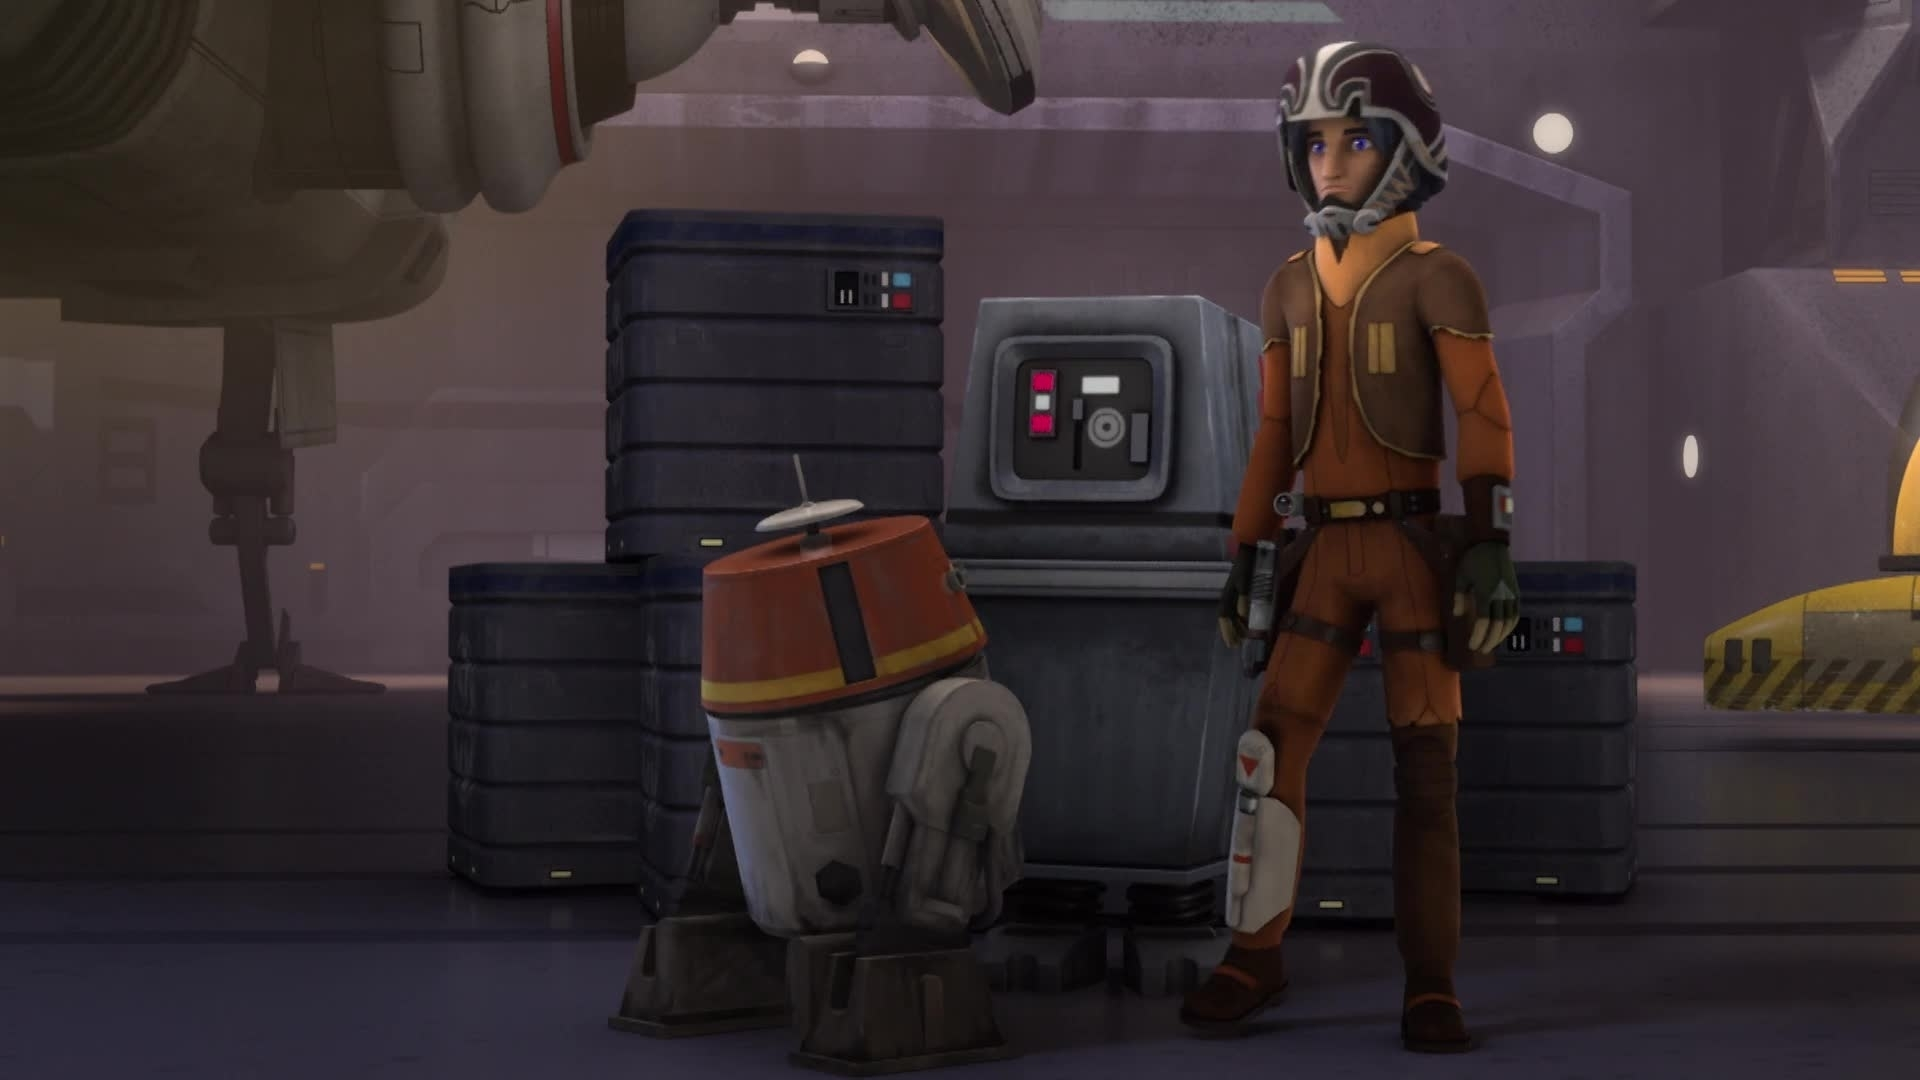 Star Wars Rebels - Bekende premiejager